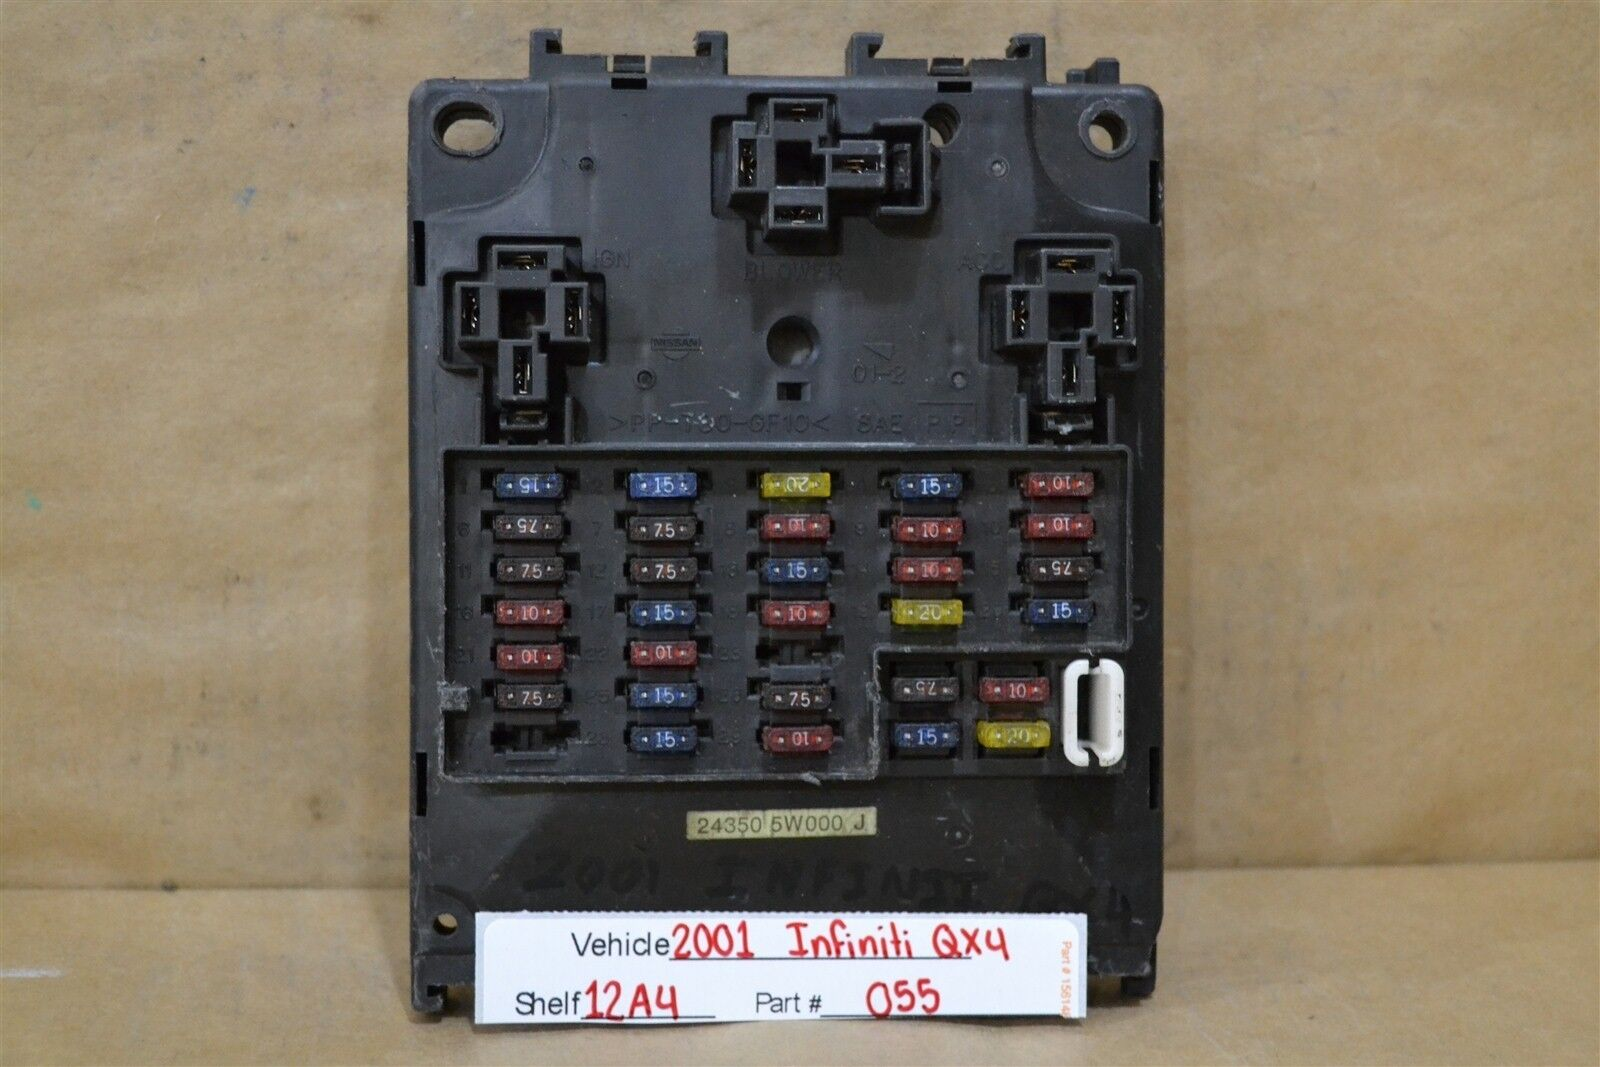 2001-2003 INFINITI QX4 Under Dash Fuse Box Relay Unit 243505W000J Module  1955 12A4